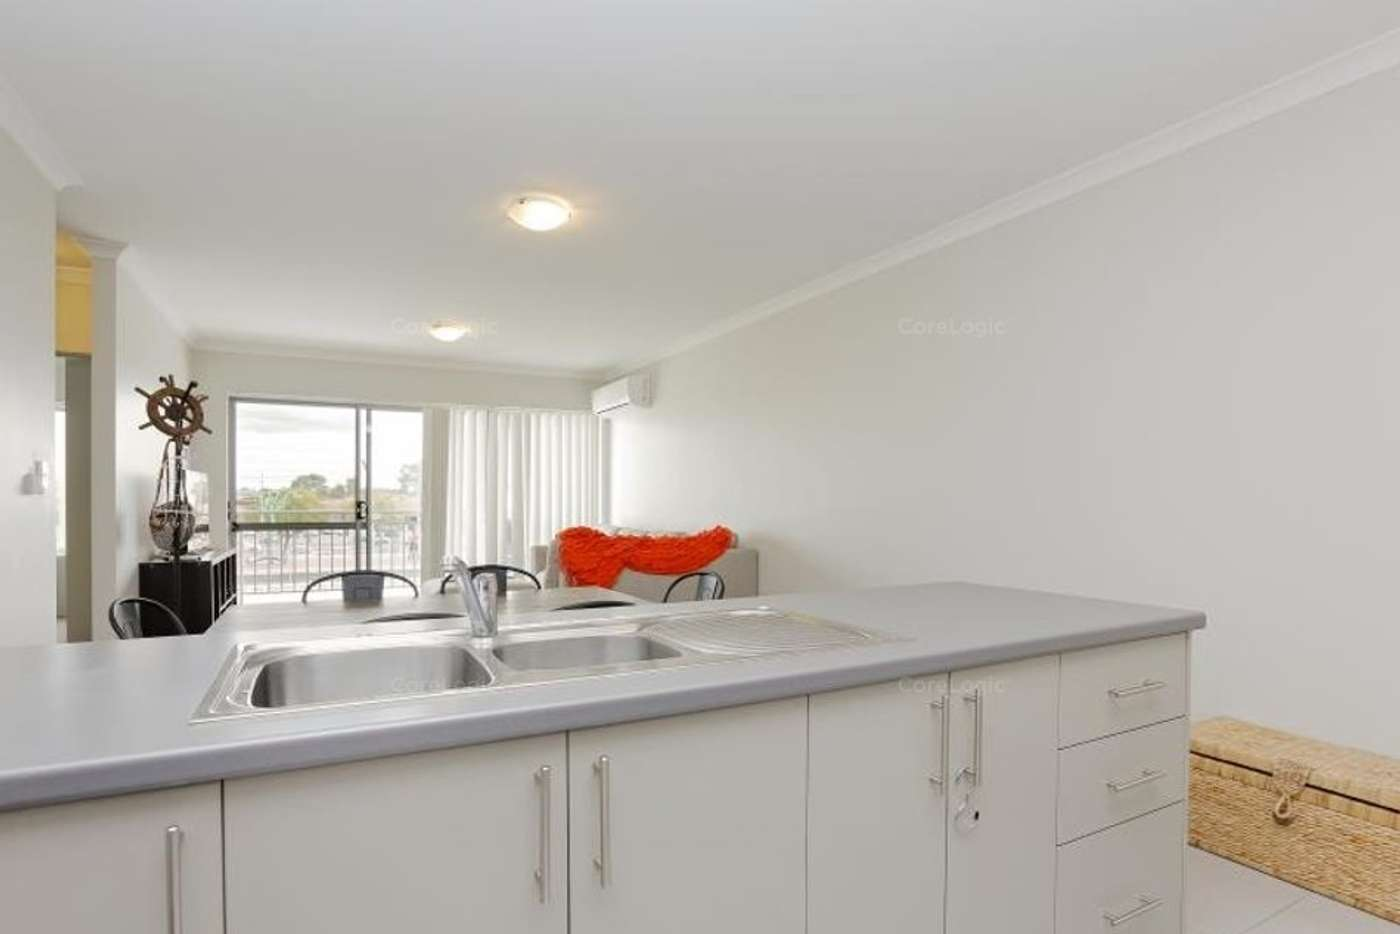 Seventh view of Homely apartment listing, 15/148 Railway Parade, Queens Park WA 6107